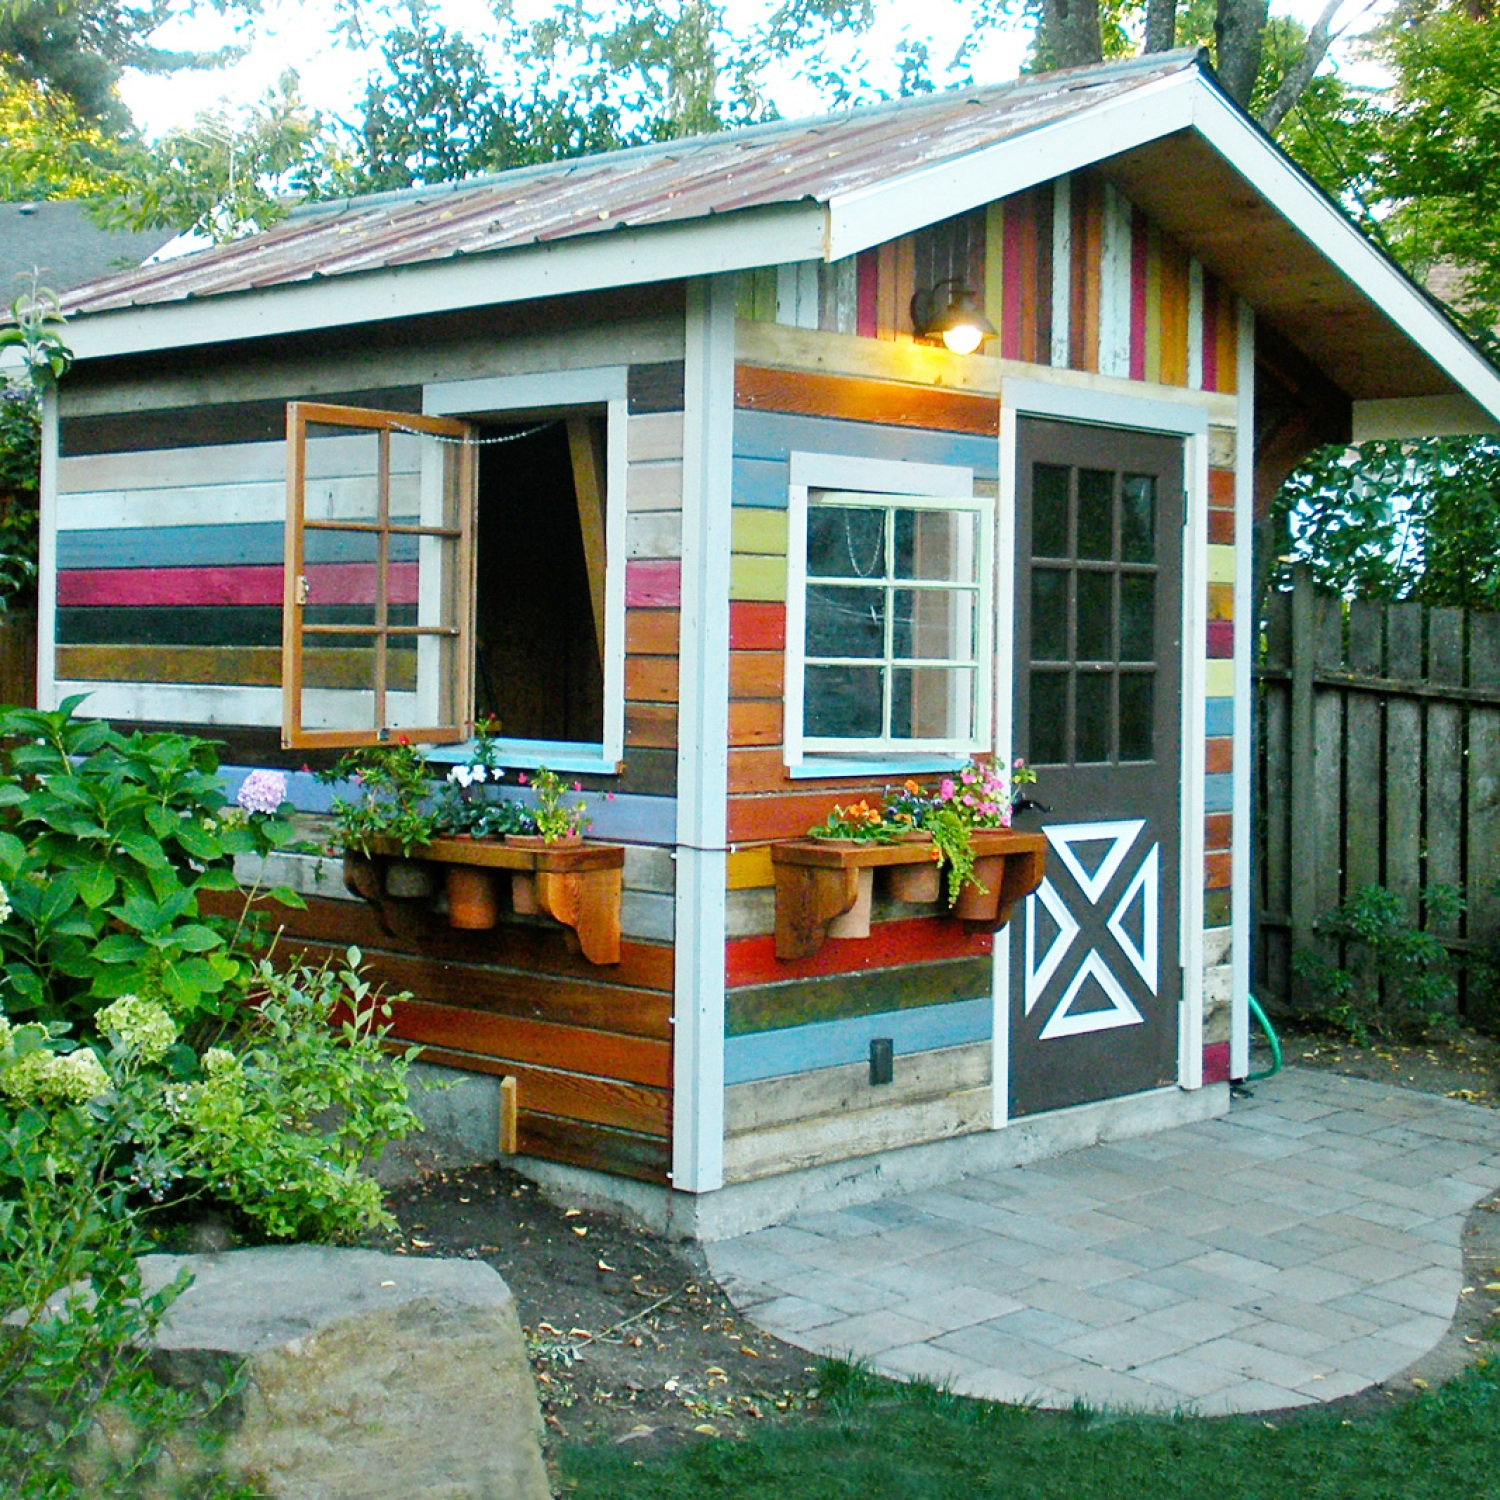 Colorful backyard shed